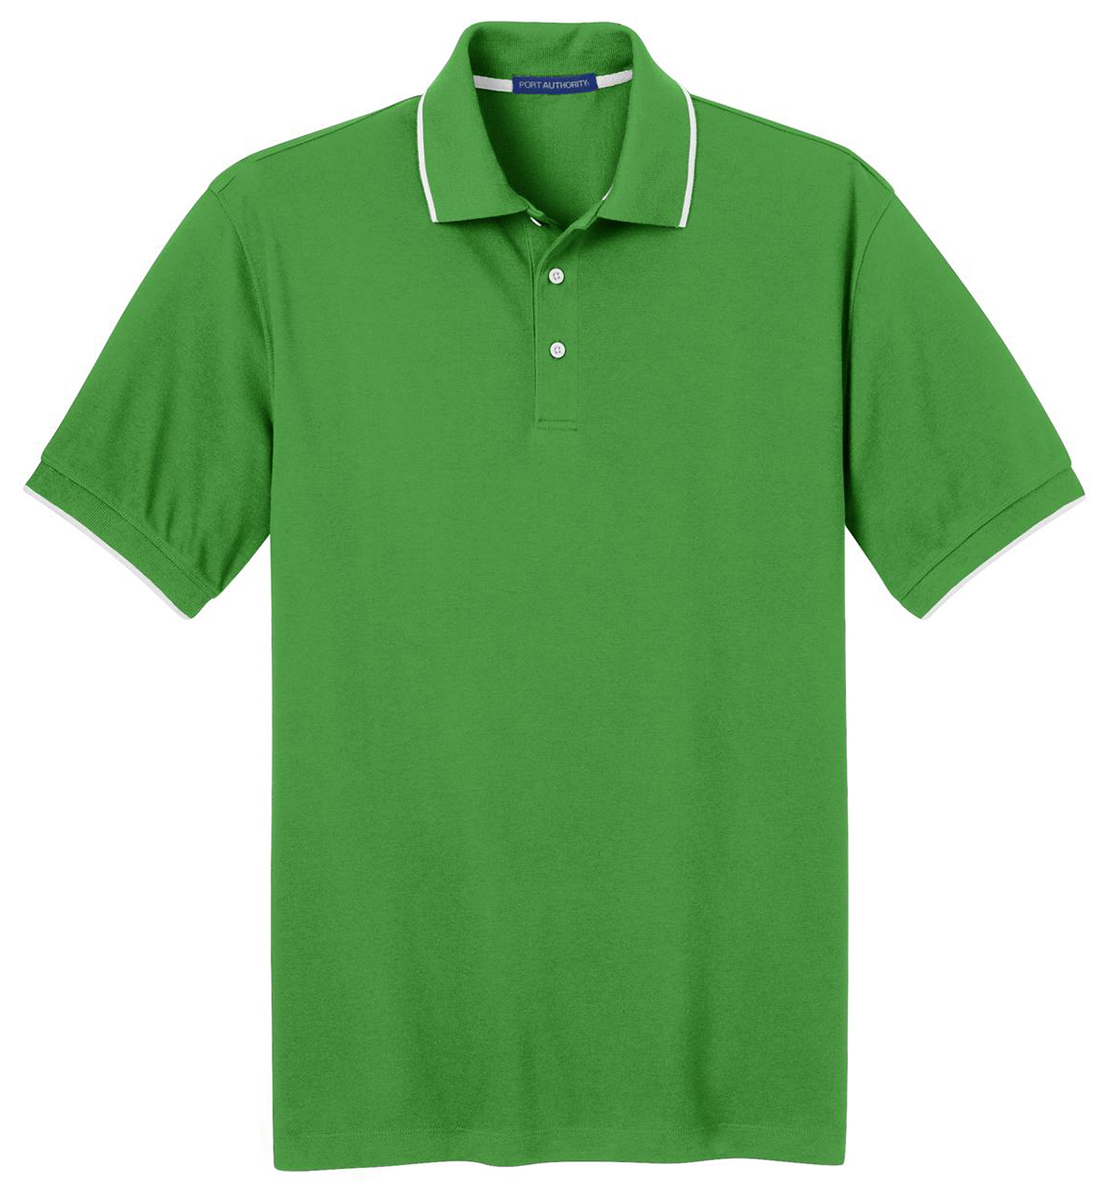 Port authority men 39 s short sleeve moisture wicking polo for Mens xs golf shirts